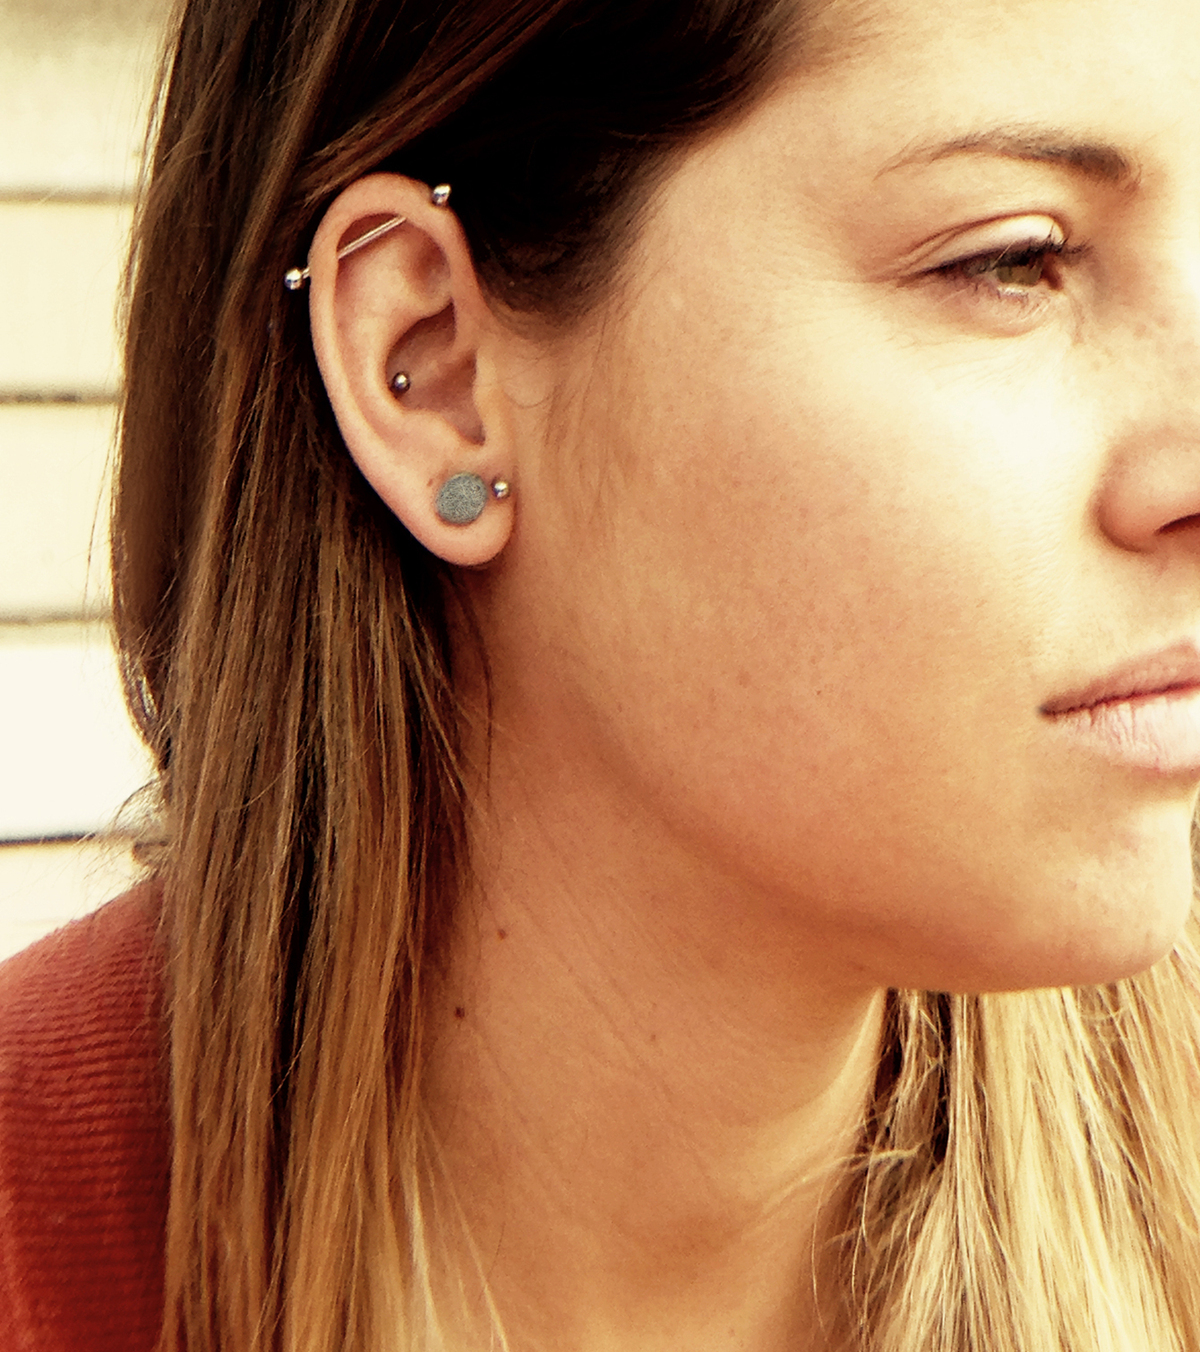 Earrings by Architact Collective. Photo courtesy of Linda Bennett.